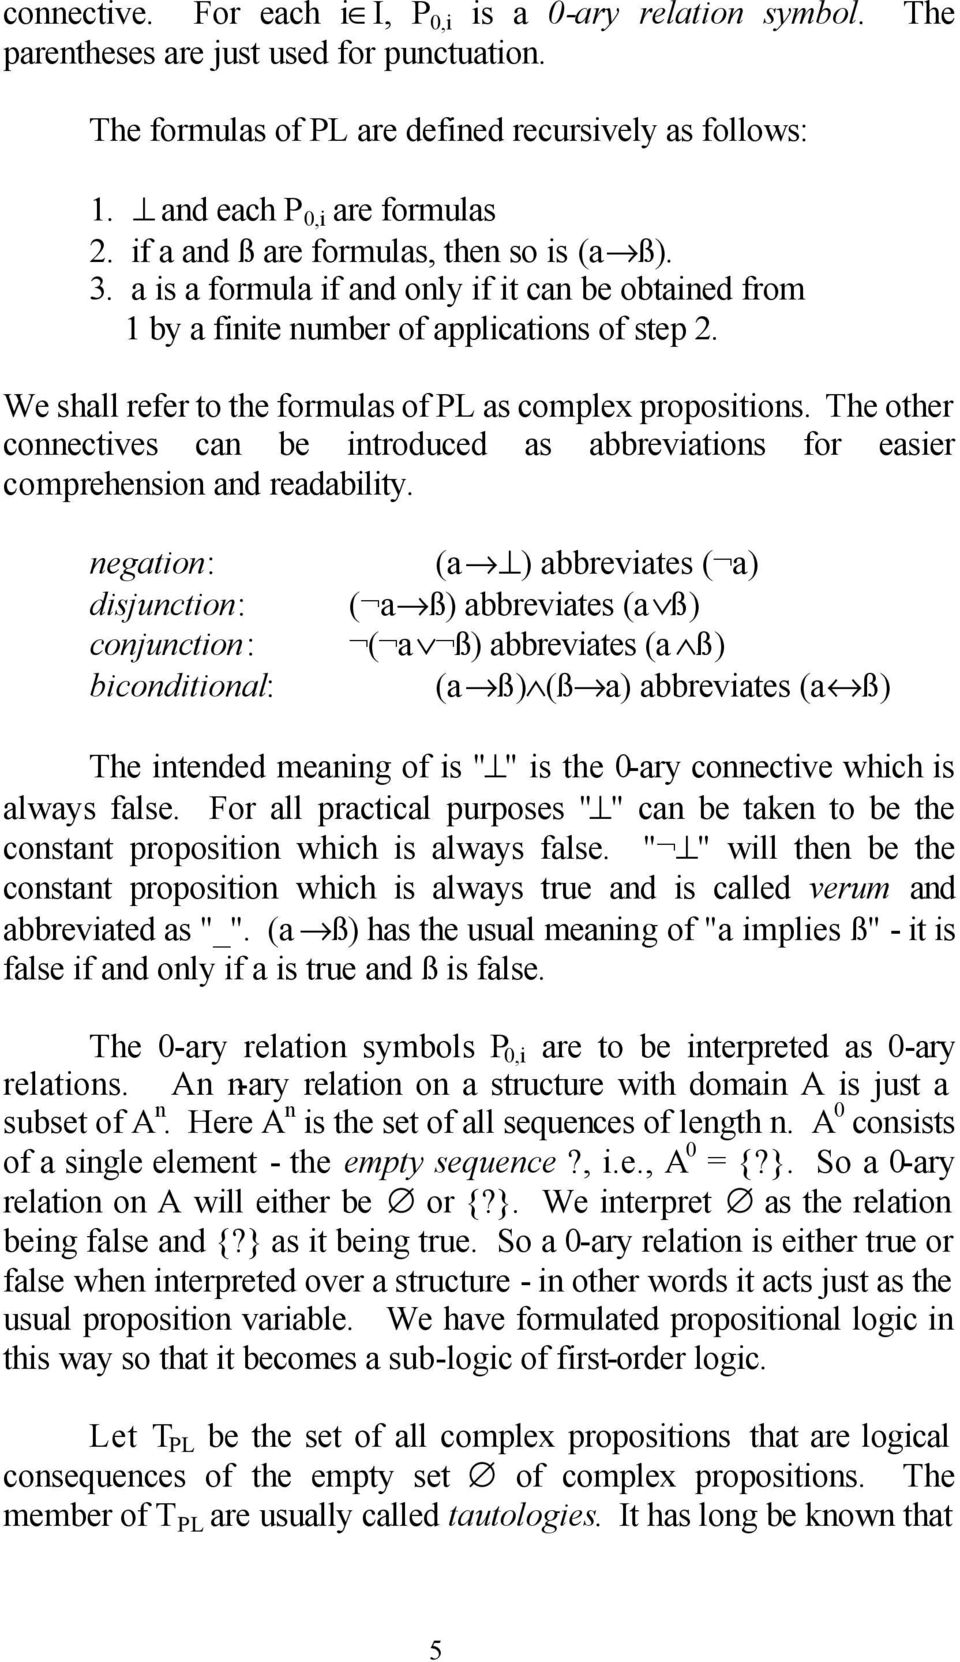 We shall refer to the formulas of PL as complex propositions. The other connectives can be introduced as abbreviations for easier comprehension and readability.